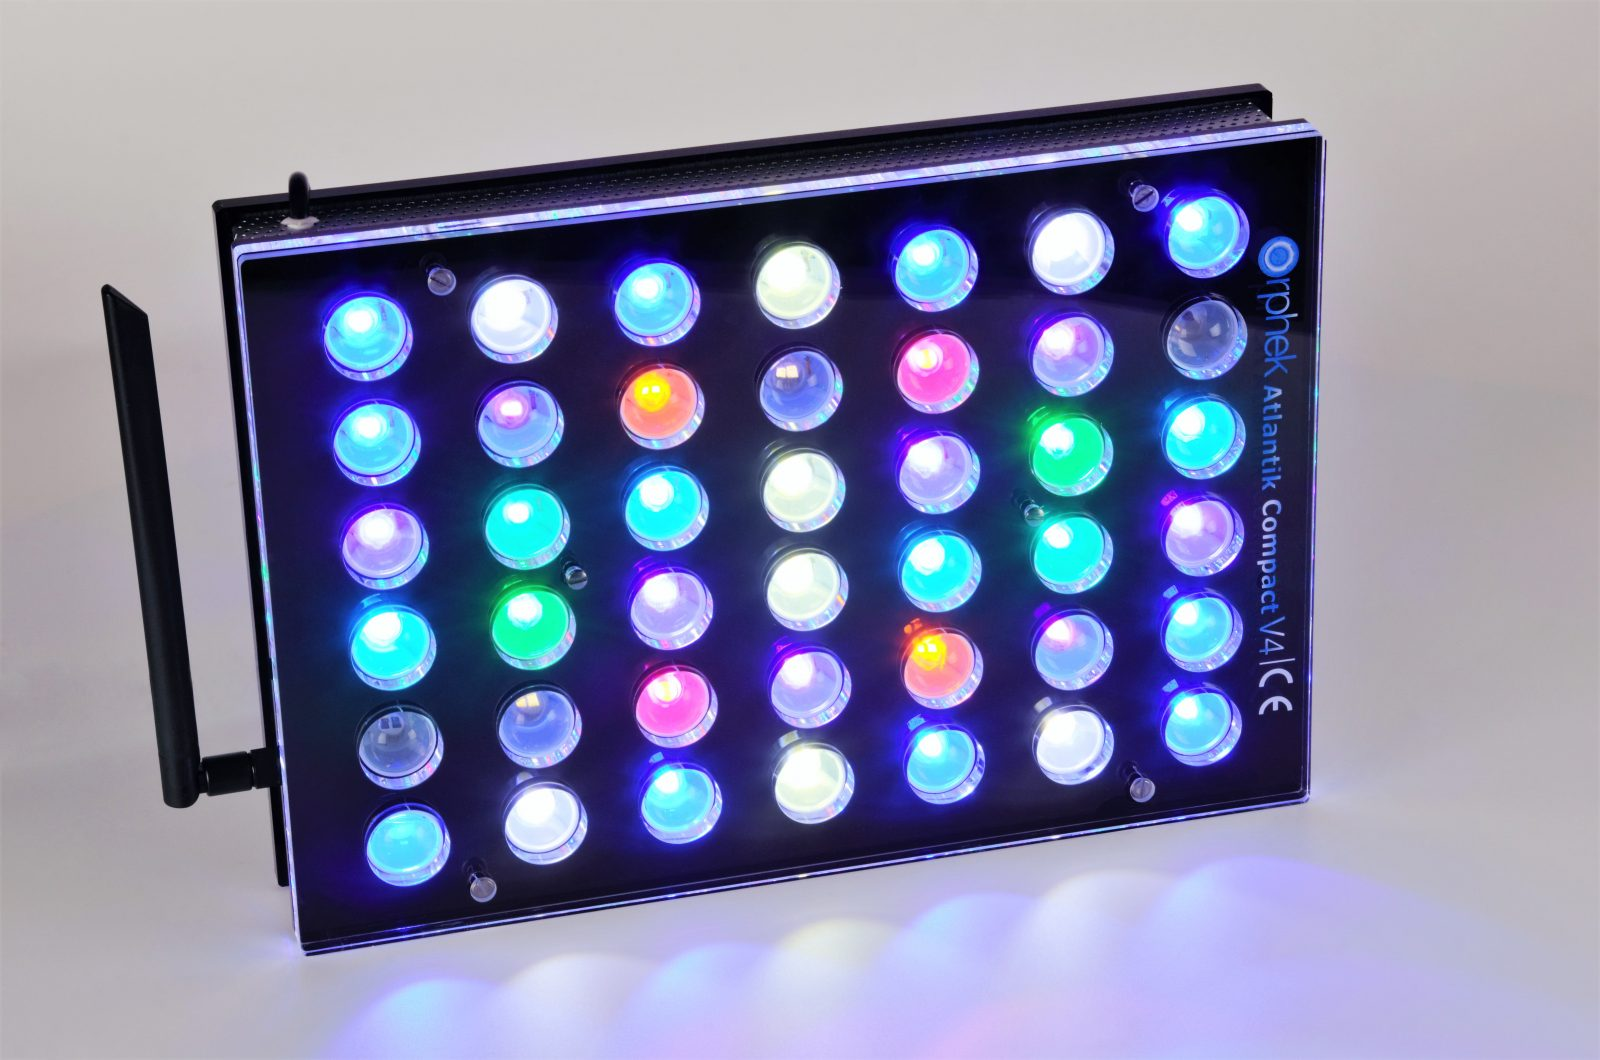 Orphek-Aquarium-LED-Lighting-Atlantic -Compact-V4-light -on - کانال 1 + 2 + 3 + 4